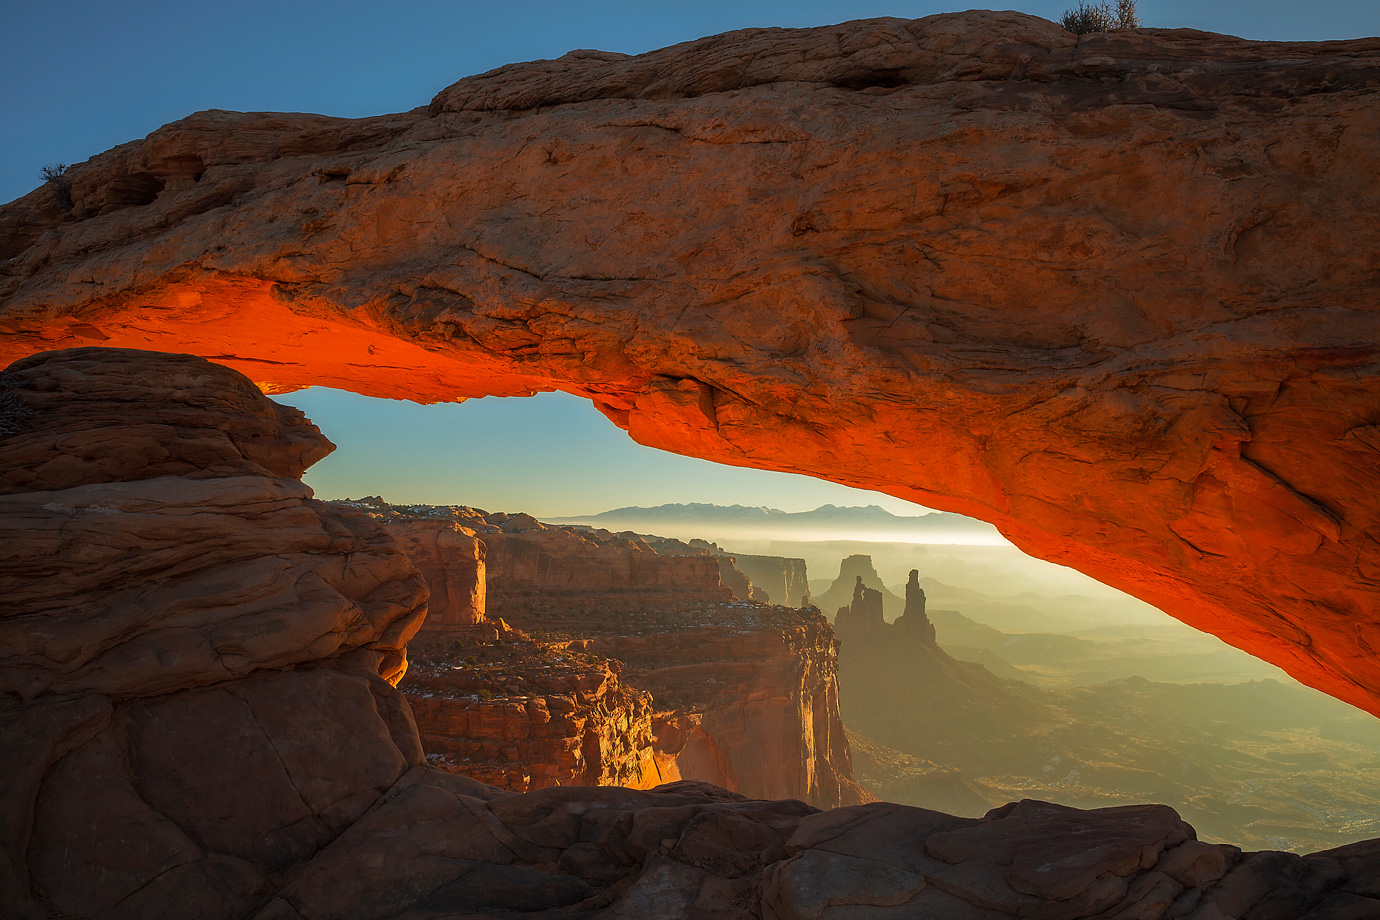 A winter sunrise illuminates the underside of Mesa Arch in Canyonlands National Parks, Utah.